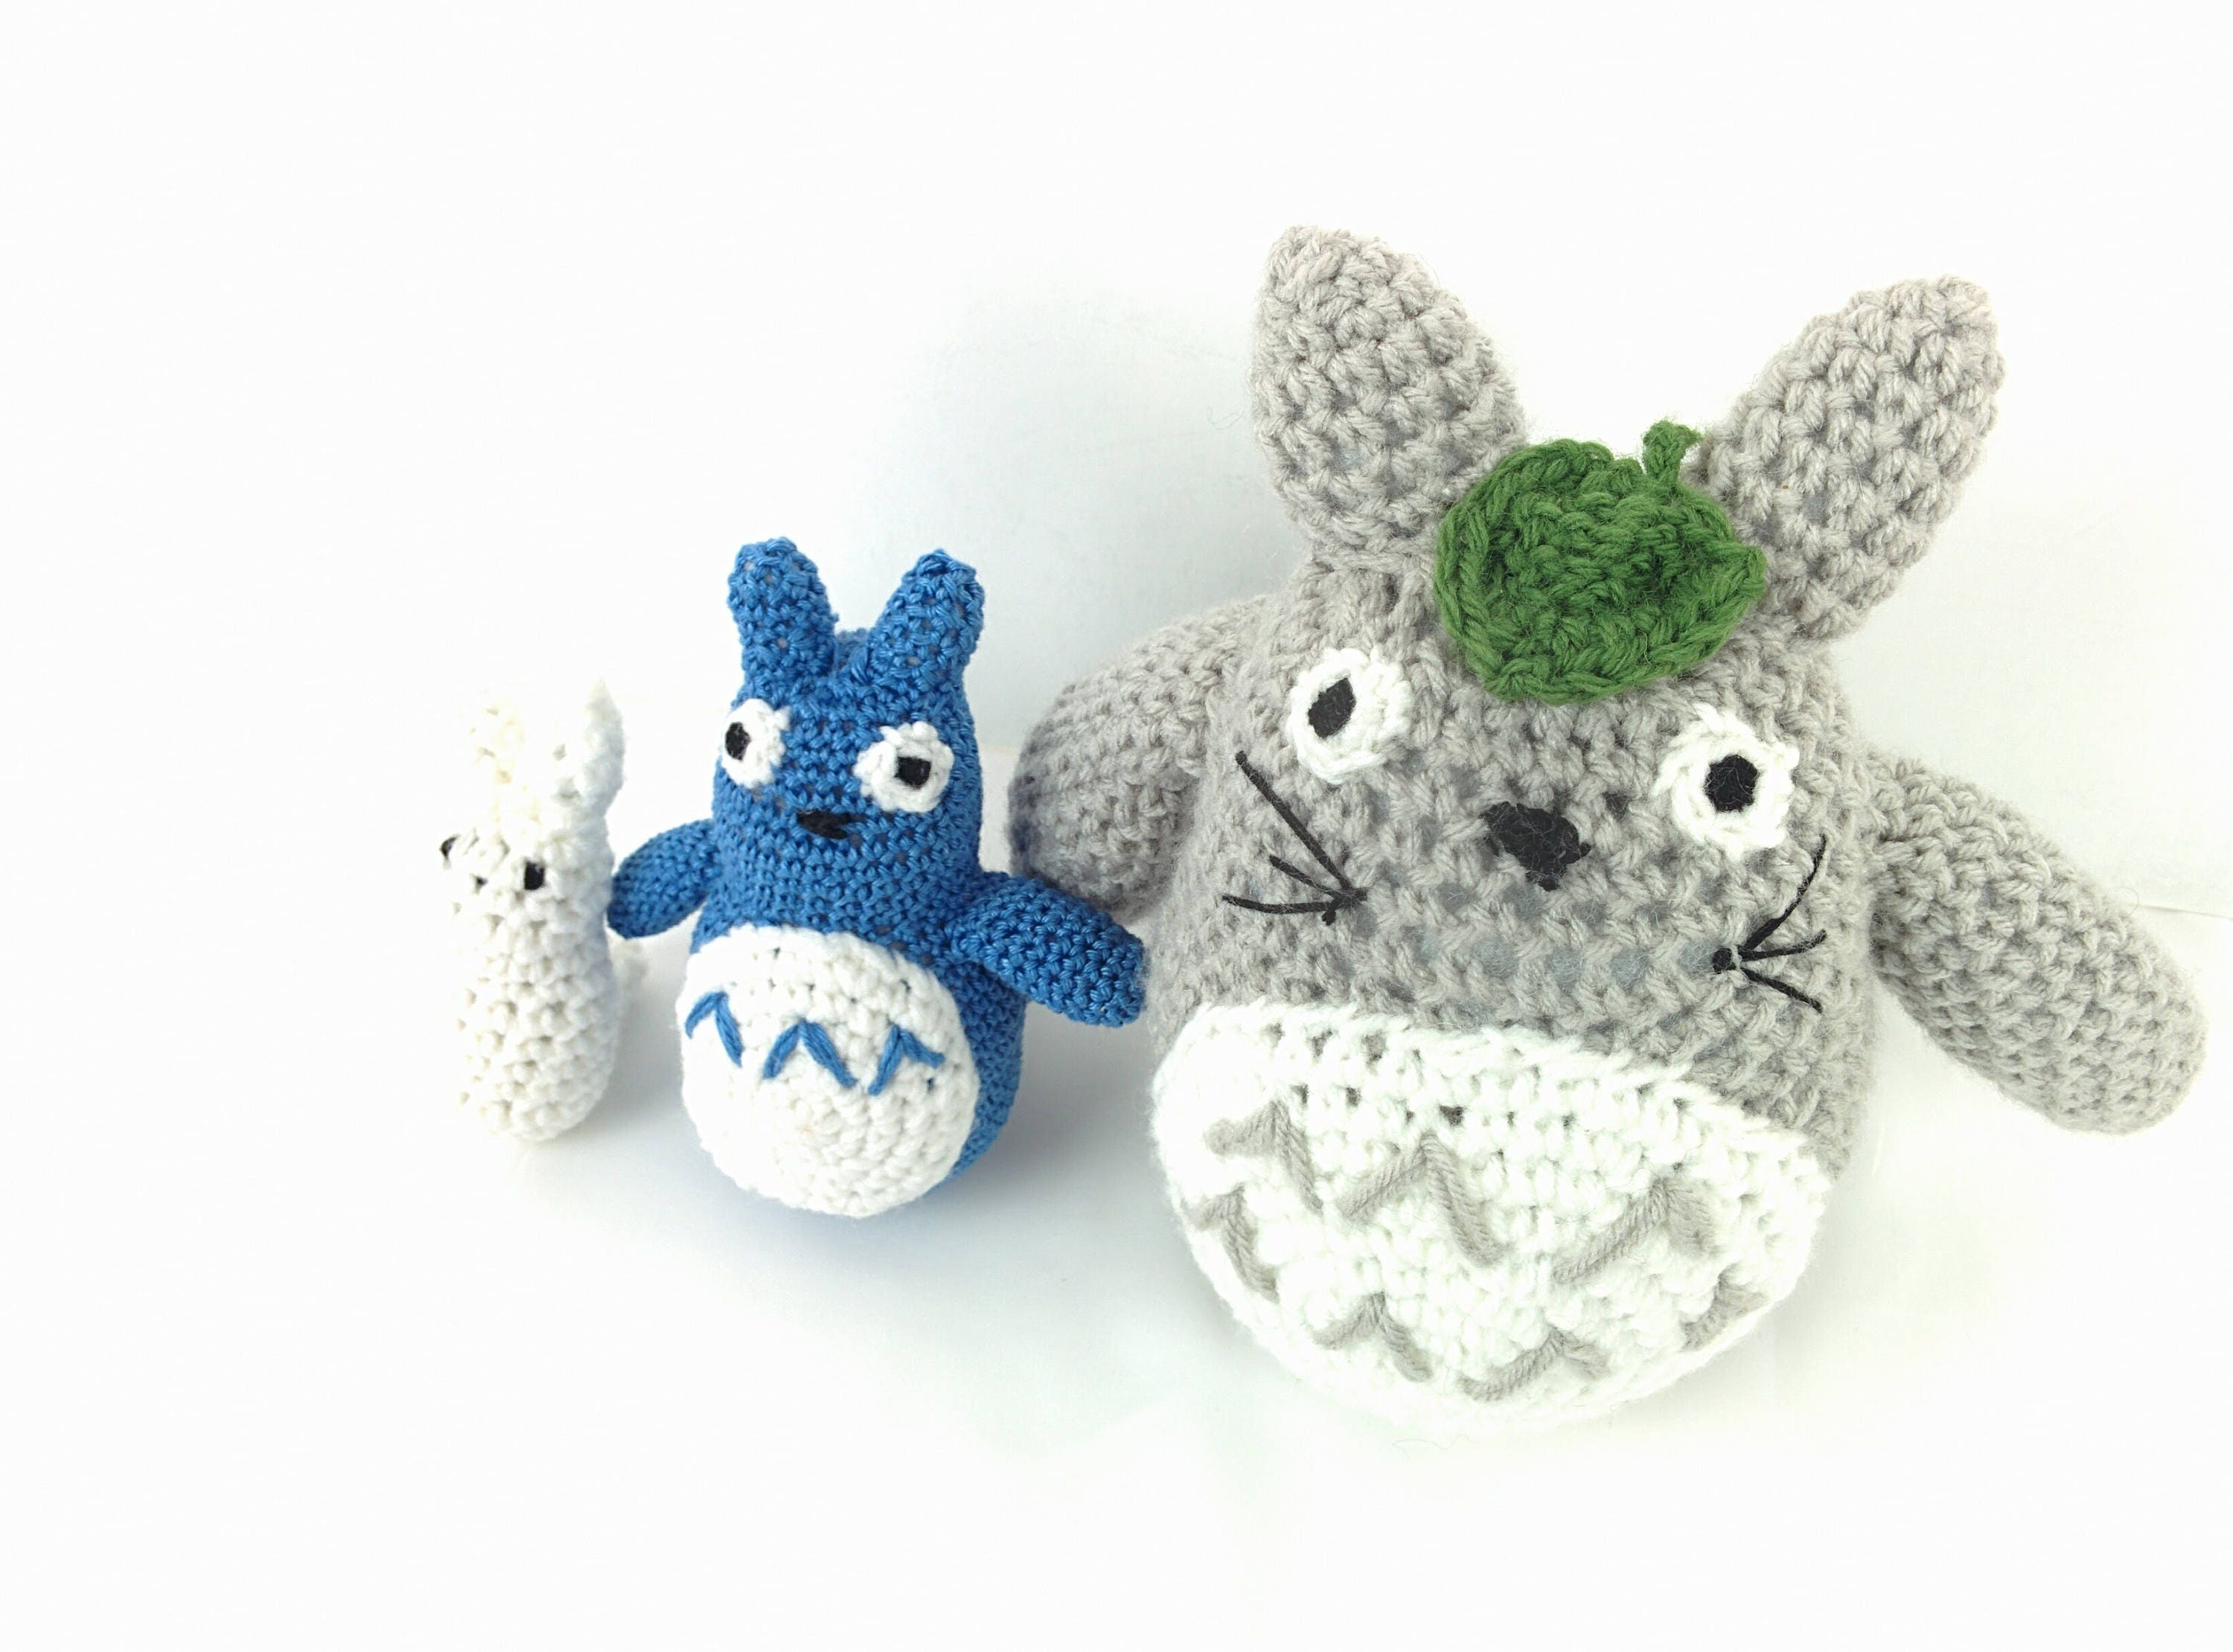 Crochet pattern crochet totoro crochet stuffed animals this is a digital file bankloansurffo Choice Image